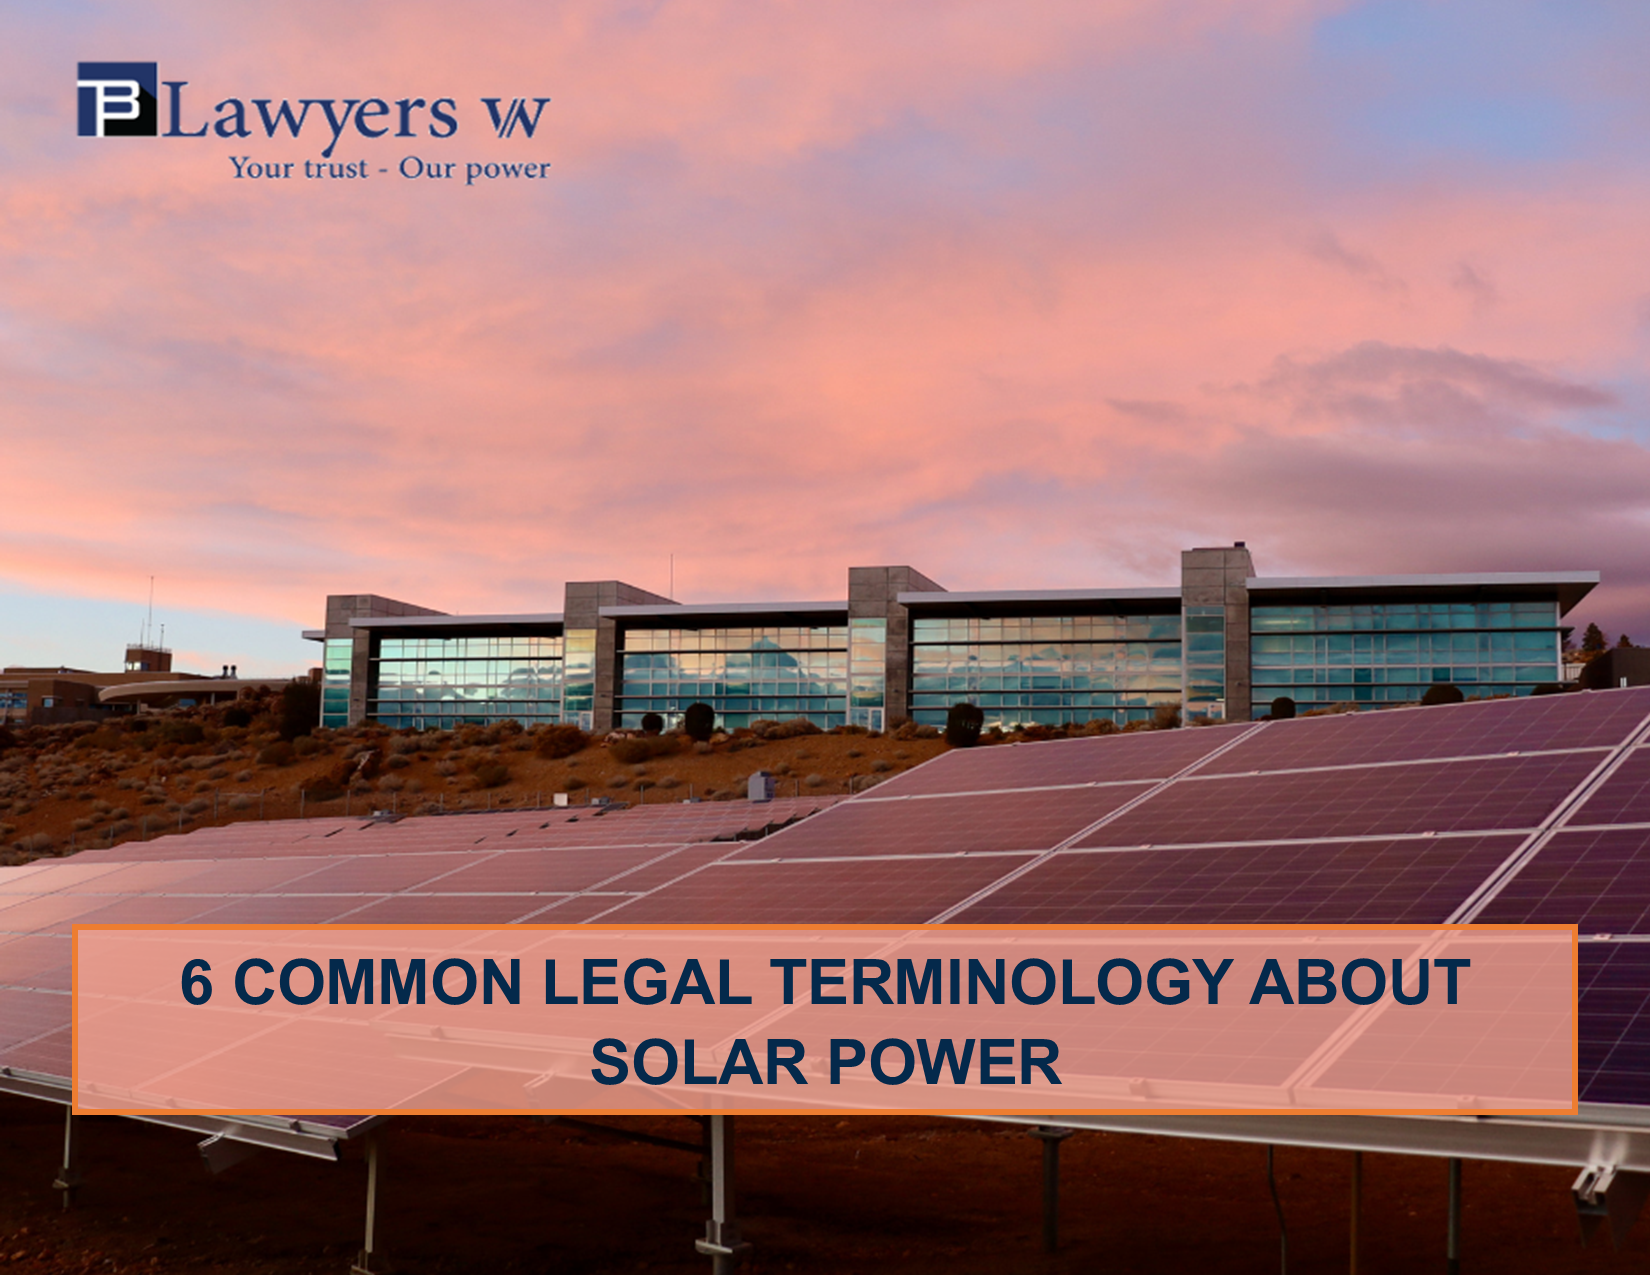 6 common legal terminology about solar power